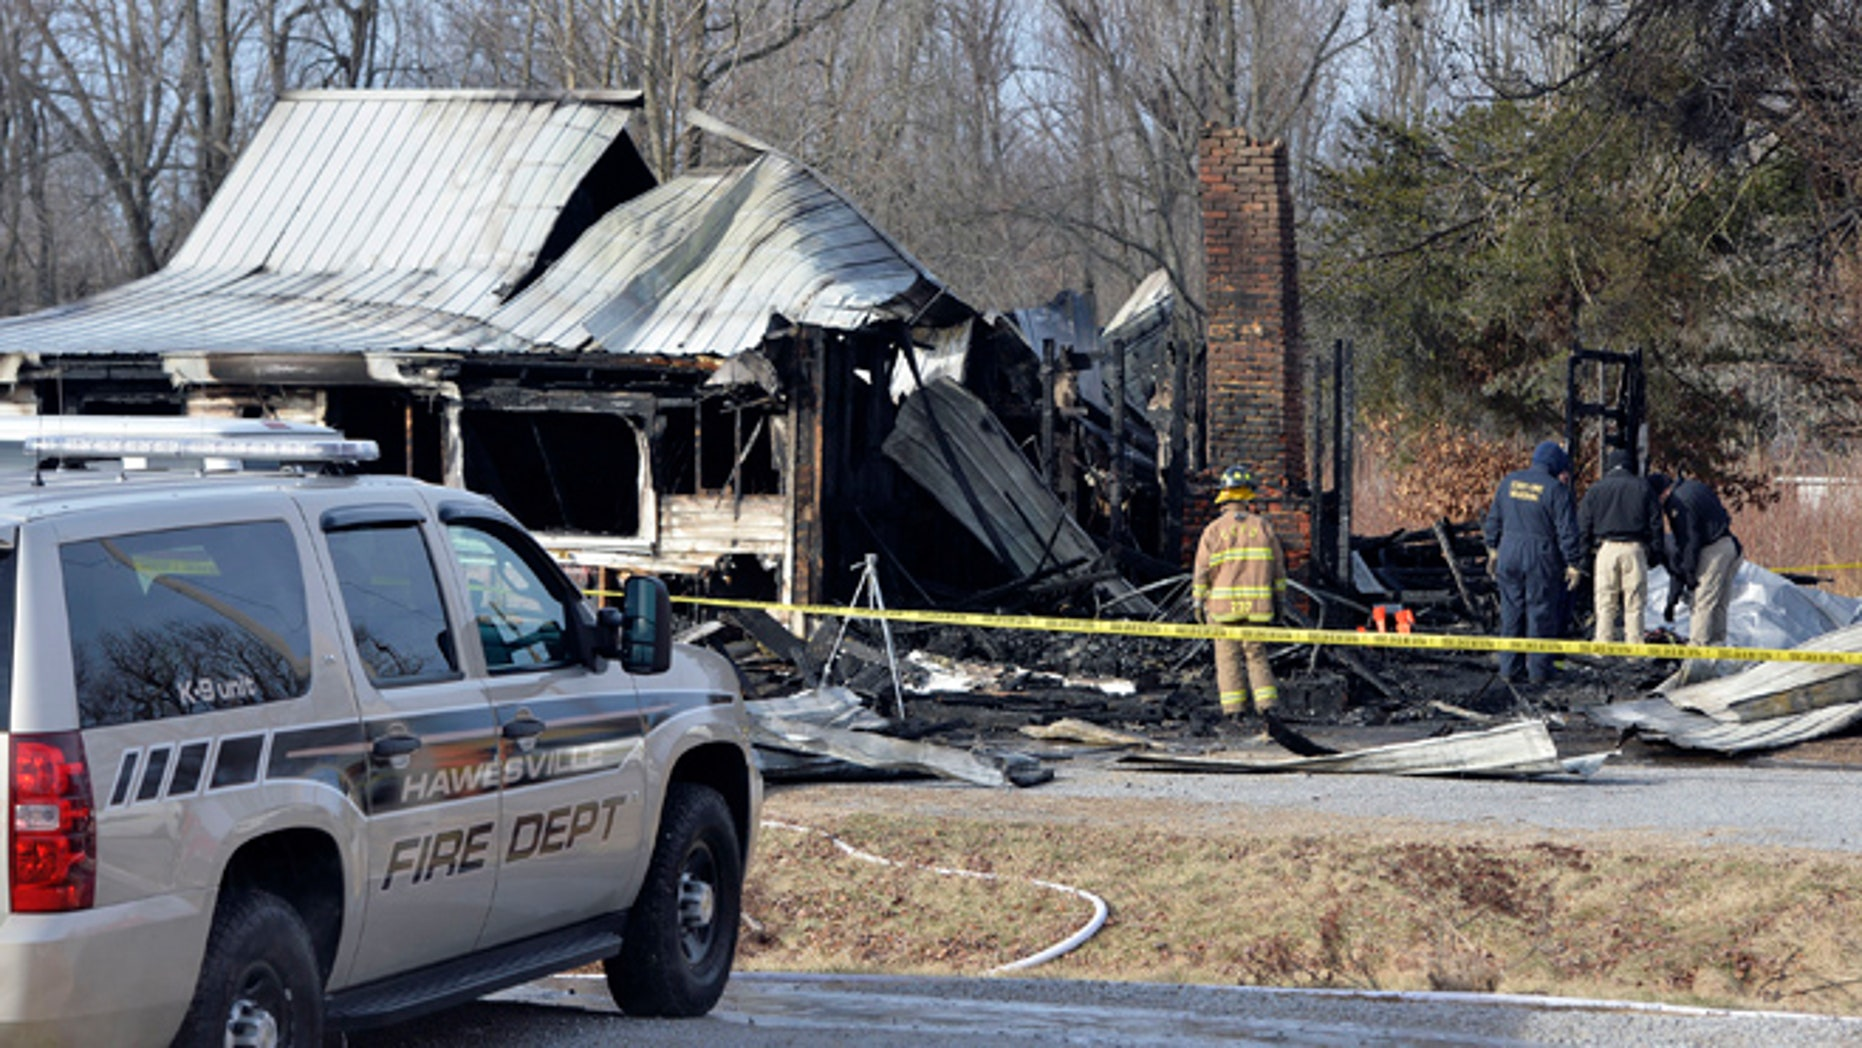 Jan. 30: Members of the Kentucky State Fire Marshall's office look over the remains of a house fire in Depoy, Ky.